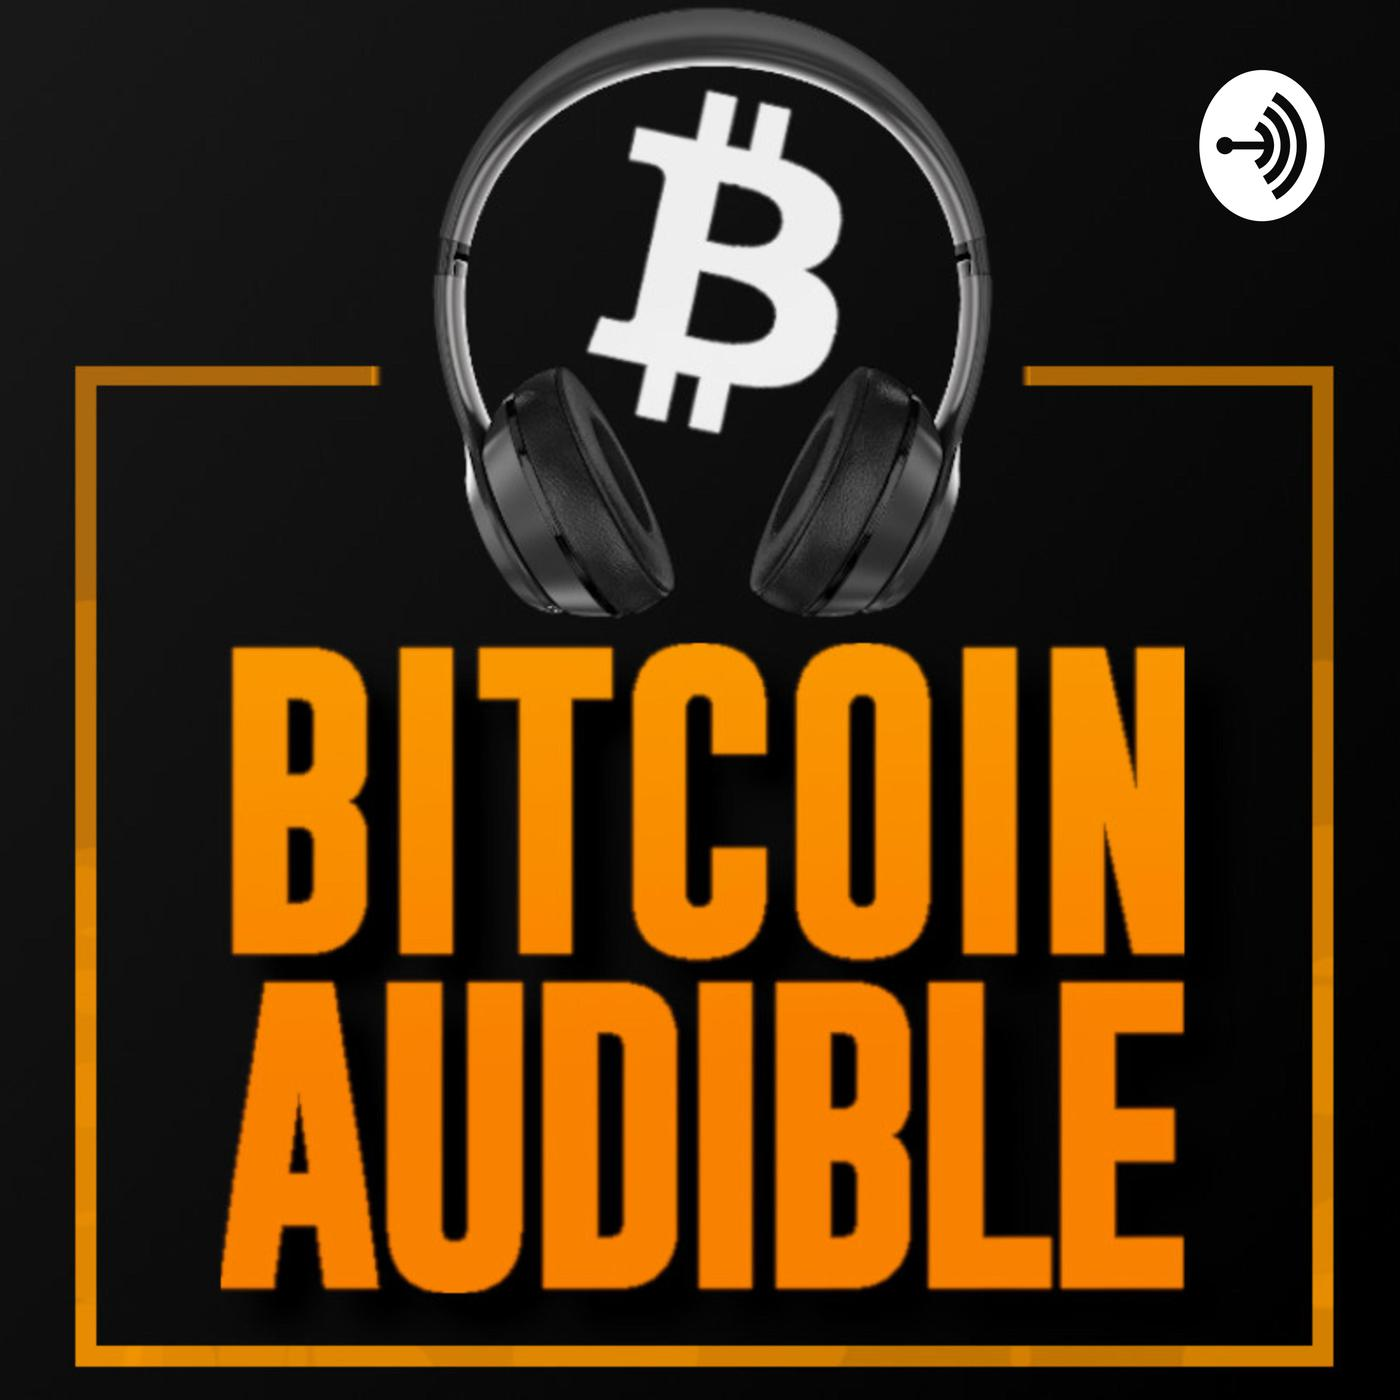 25 bitcoins to audible quadrella betting explained further